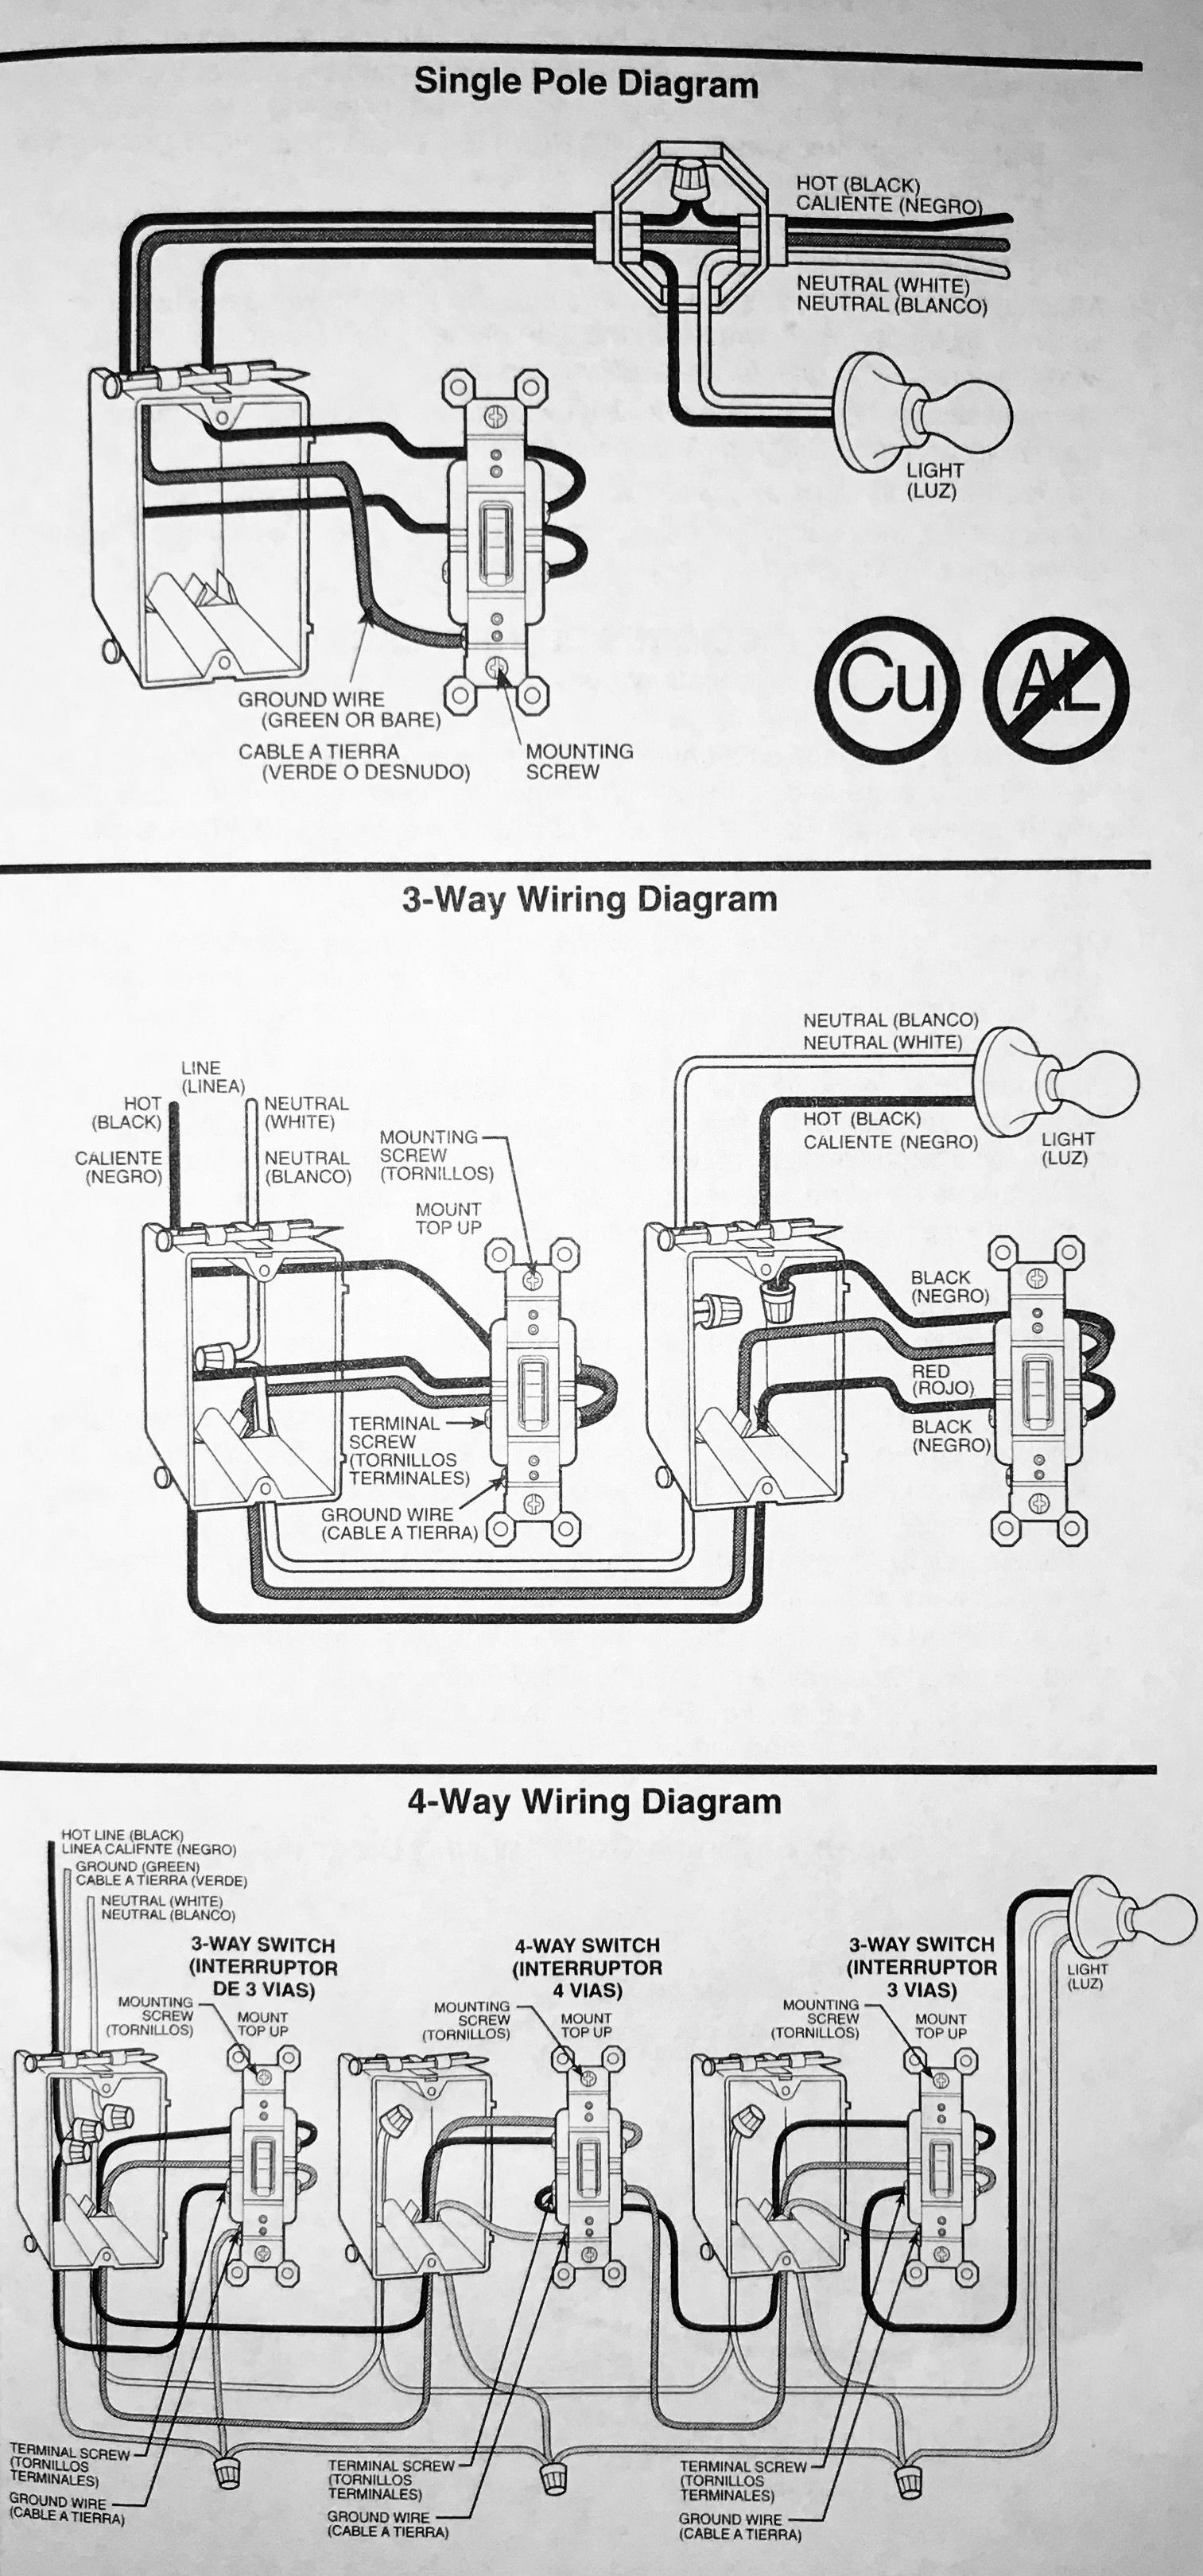 installation of single pole, 3 way, & 4 way switches wiring 2 pole switch diagram installation of single pole, 3 way, & 4 way switches wiring diagram